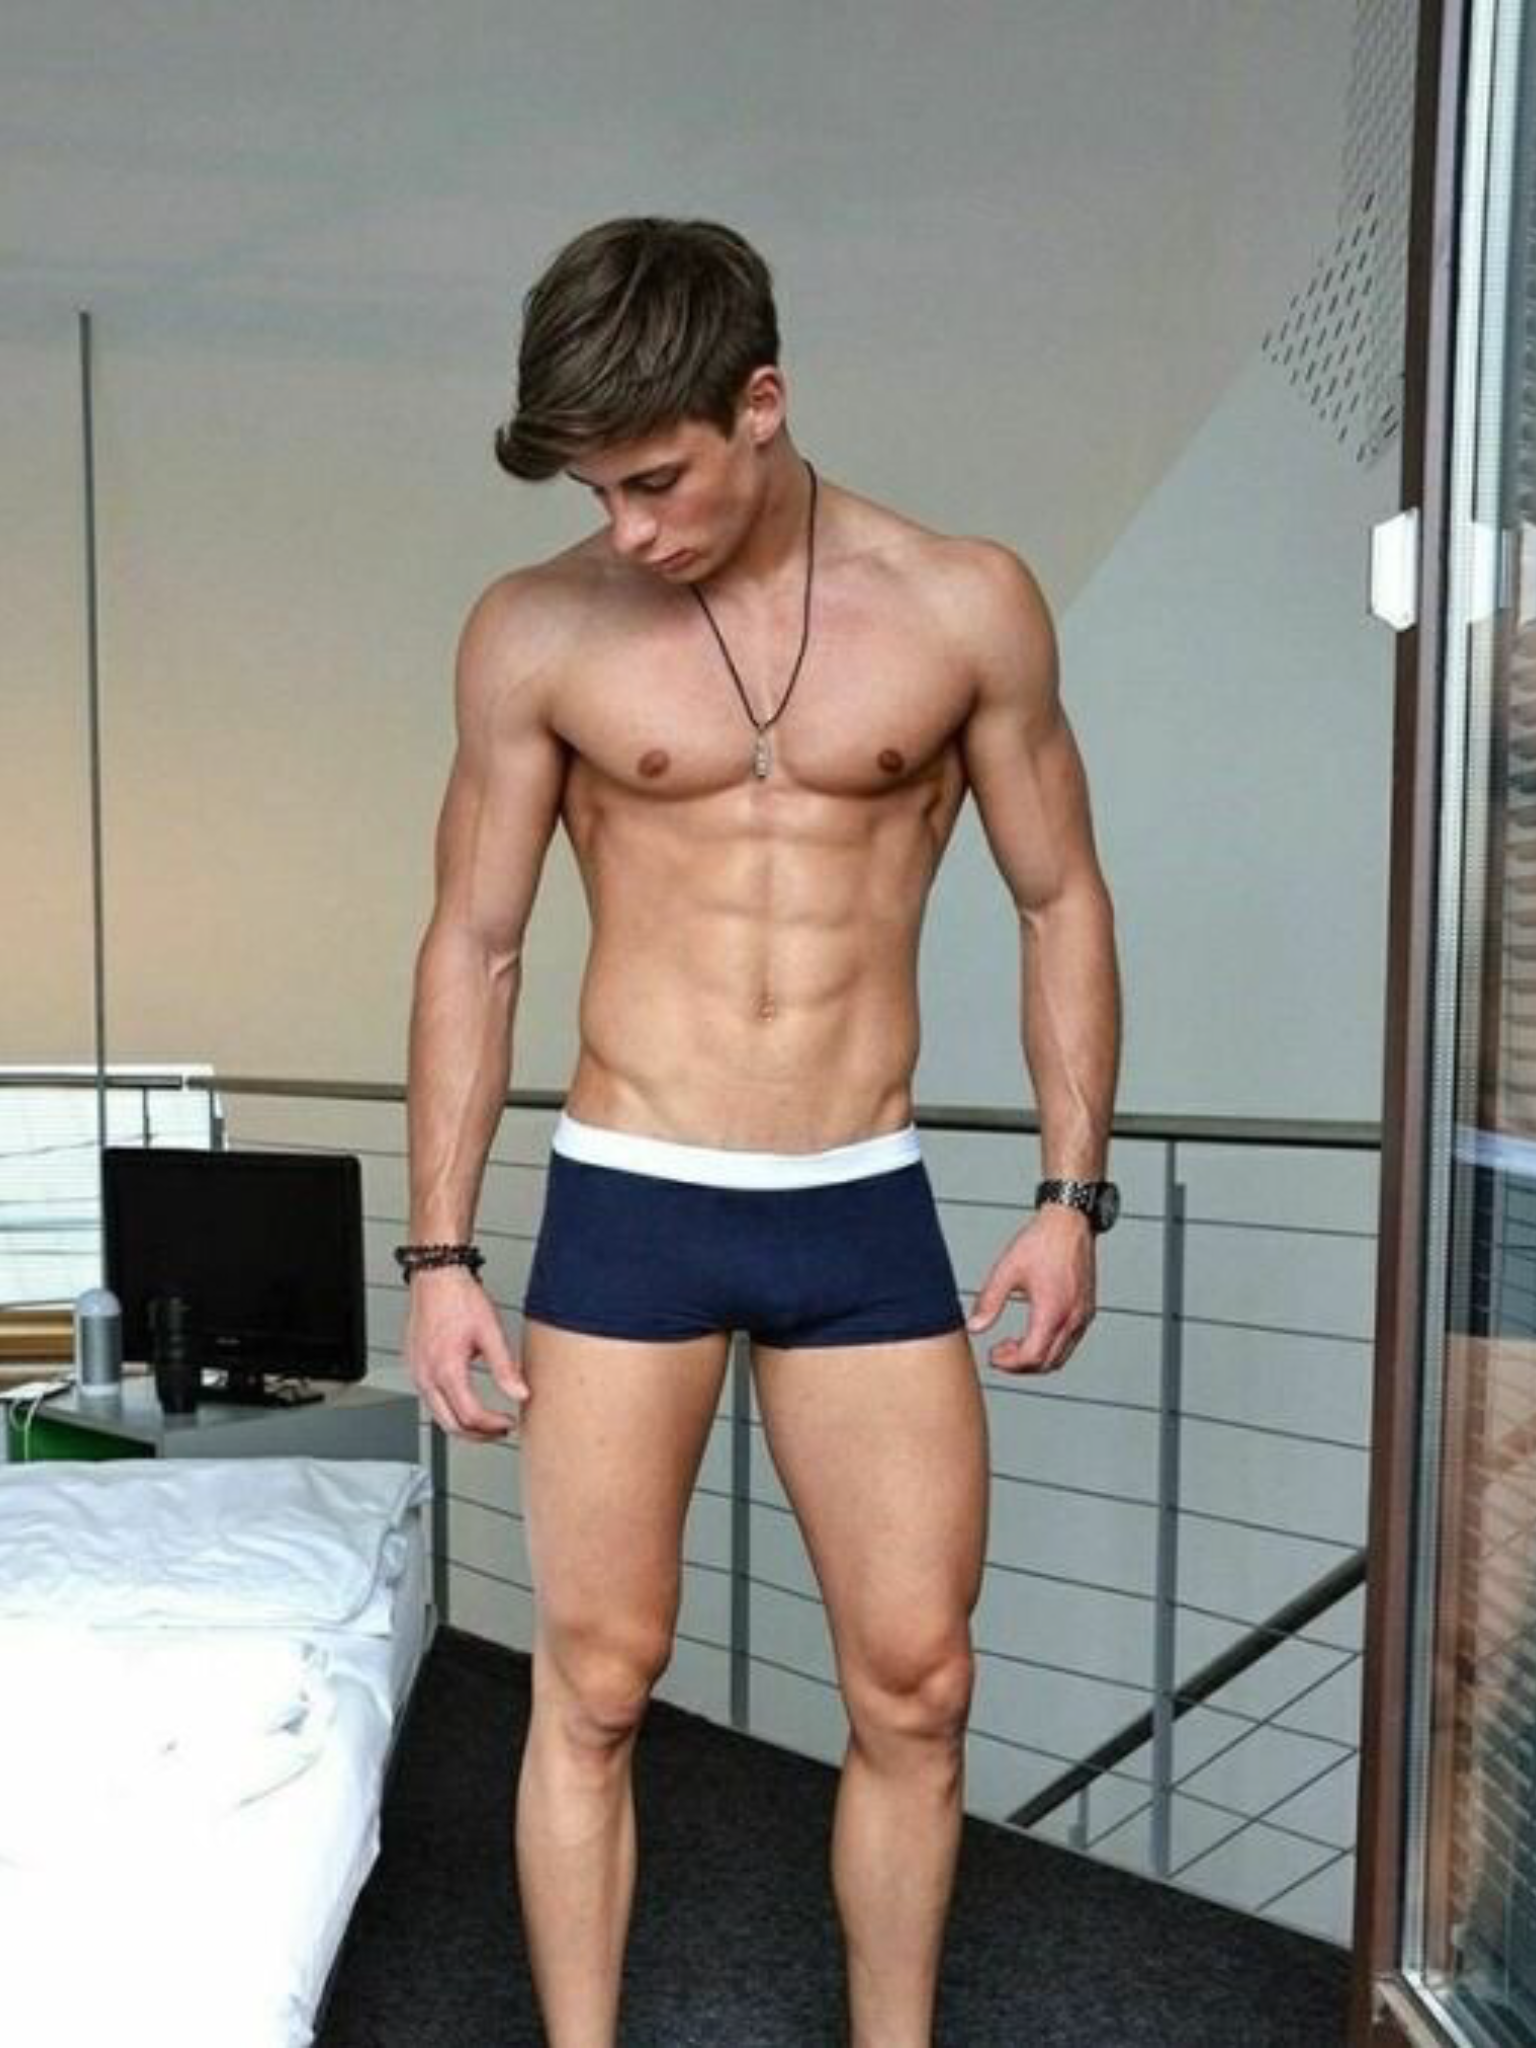 College Boys | Boxer Briefs and Underwear in 2019 ... - photo#17